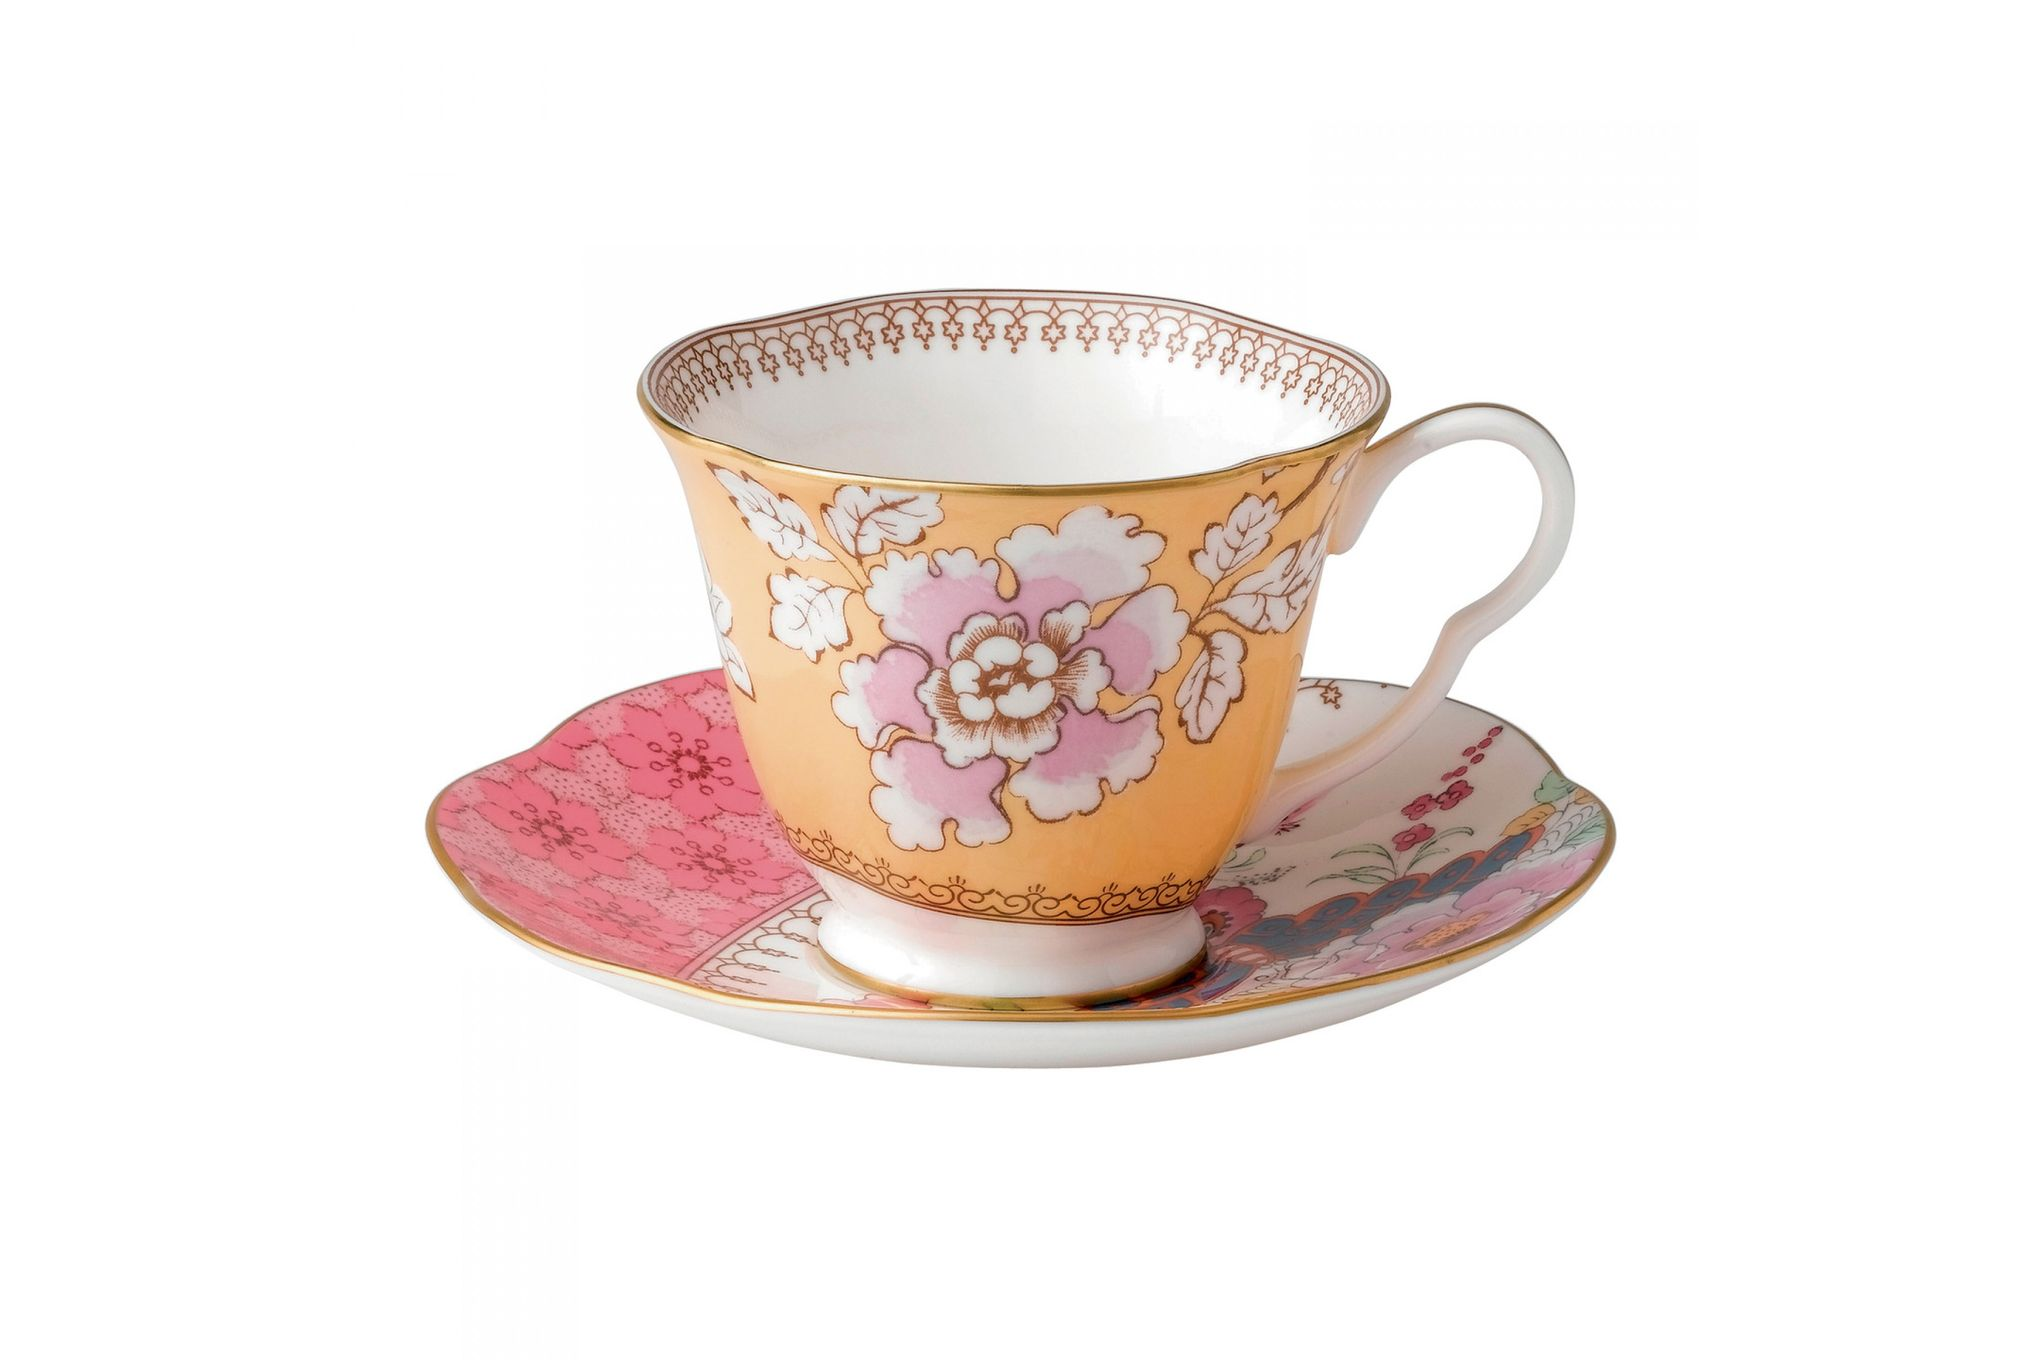 Wedgwood Butterfly Bloom Teacup & Saucer Yellow thumb 1